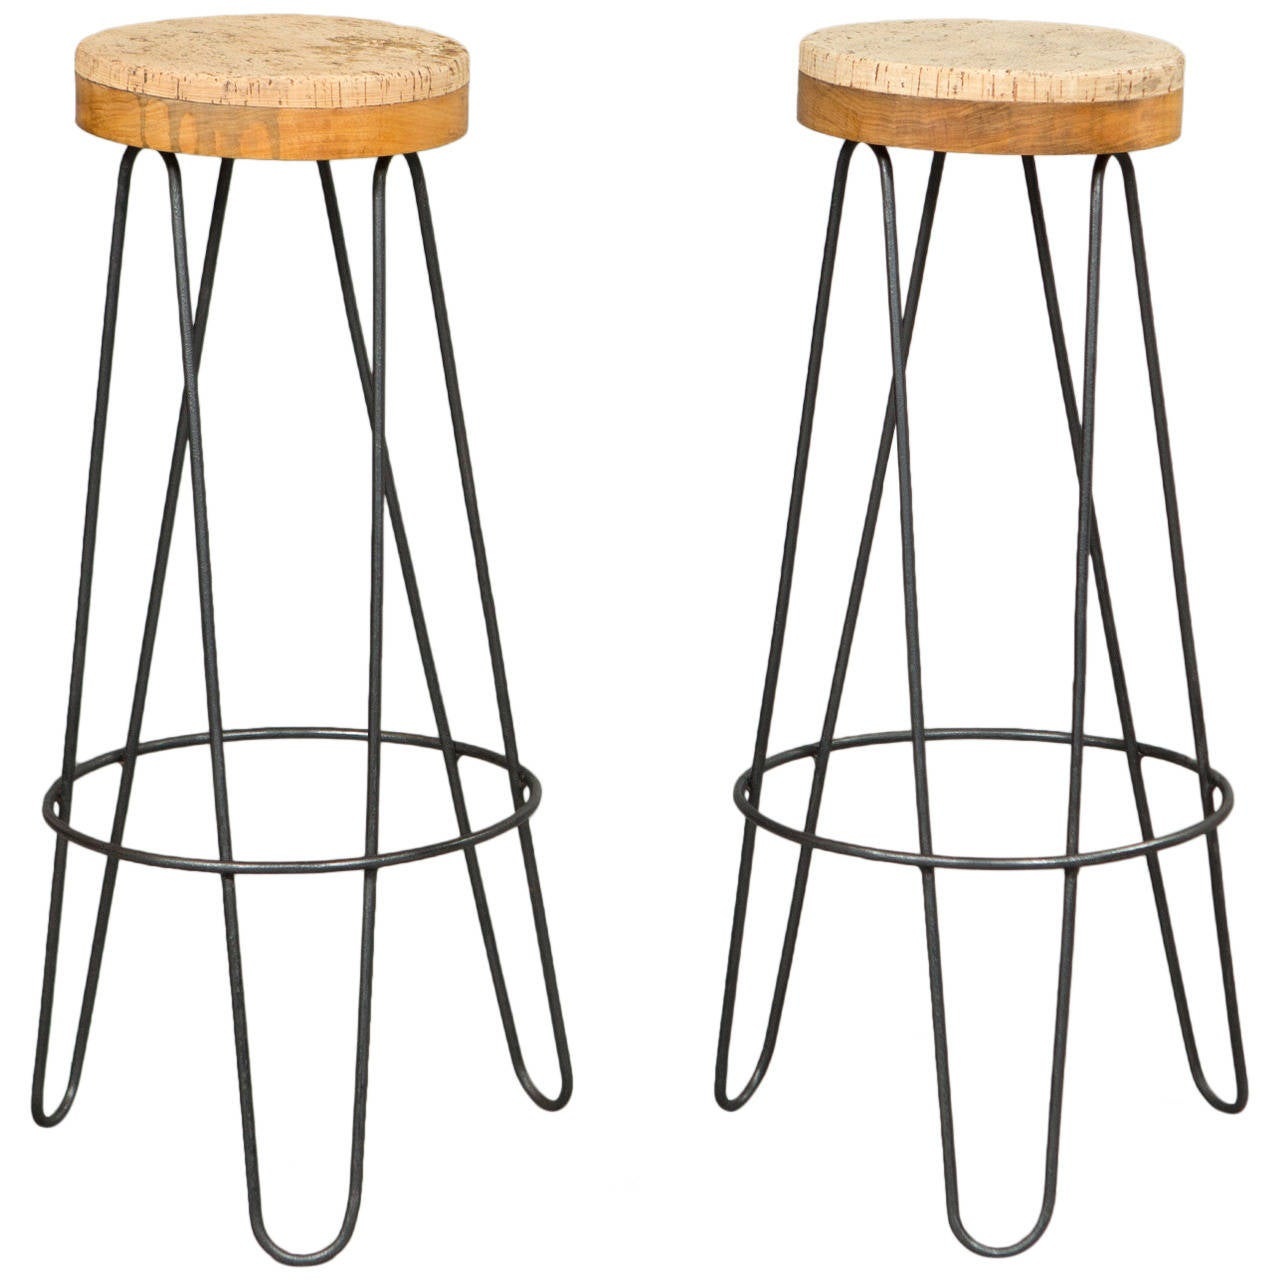 Pair of 1960s Industrial Stools with Cork Tops For Sale